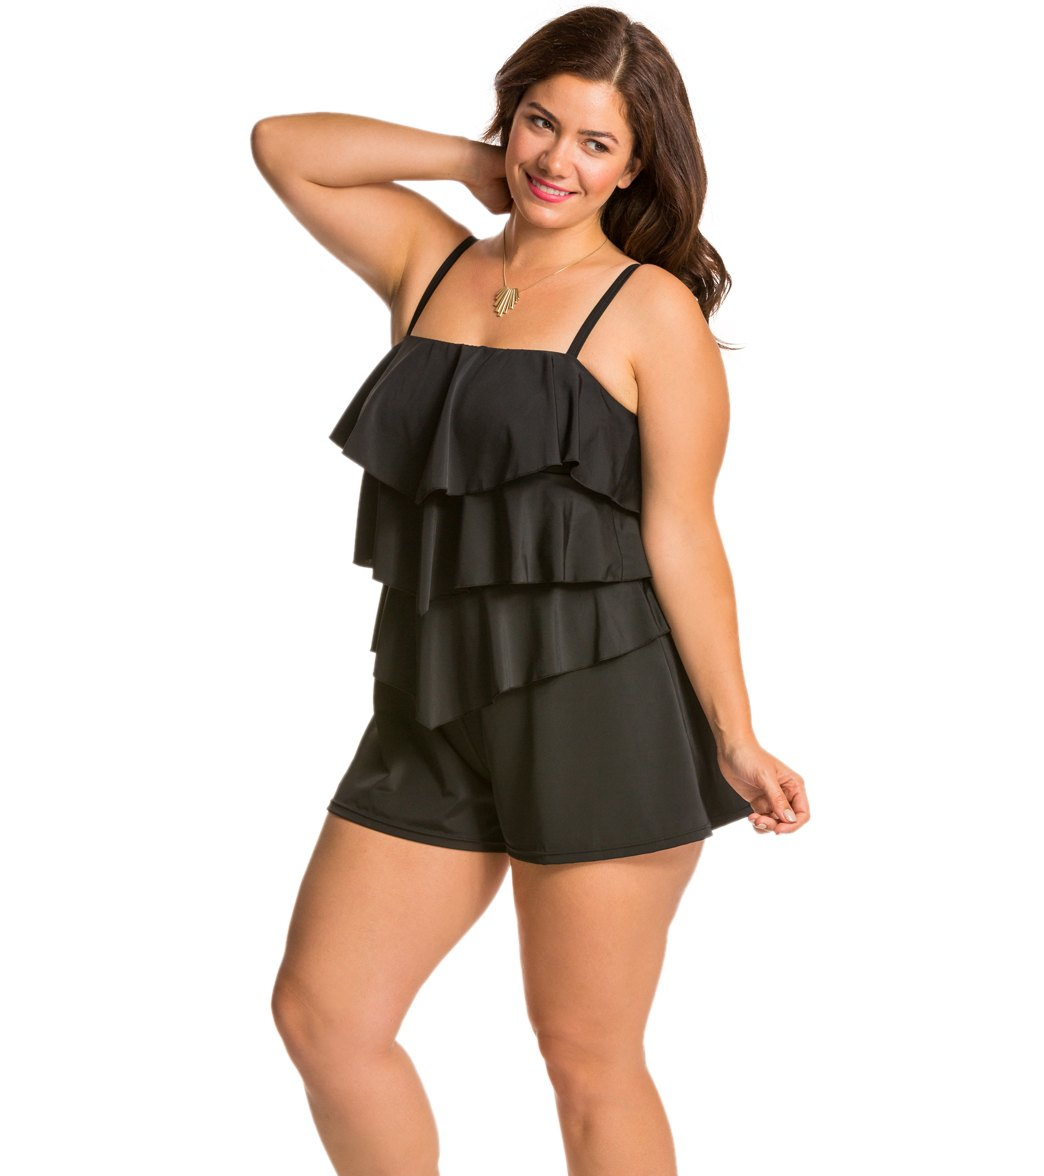 bc8f2a8226 Fit4U Swimwear Plus Size Solid Tiered Swim Romper at SwimOutlet.com ...